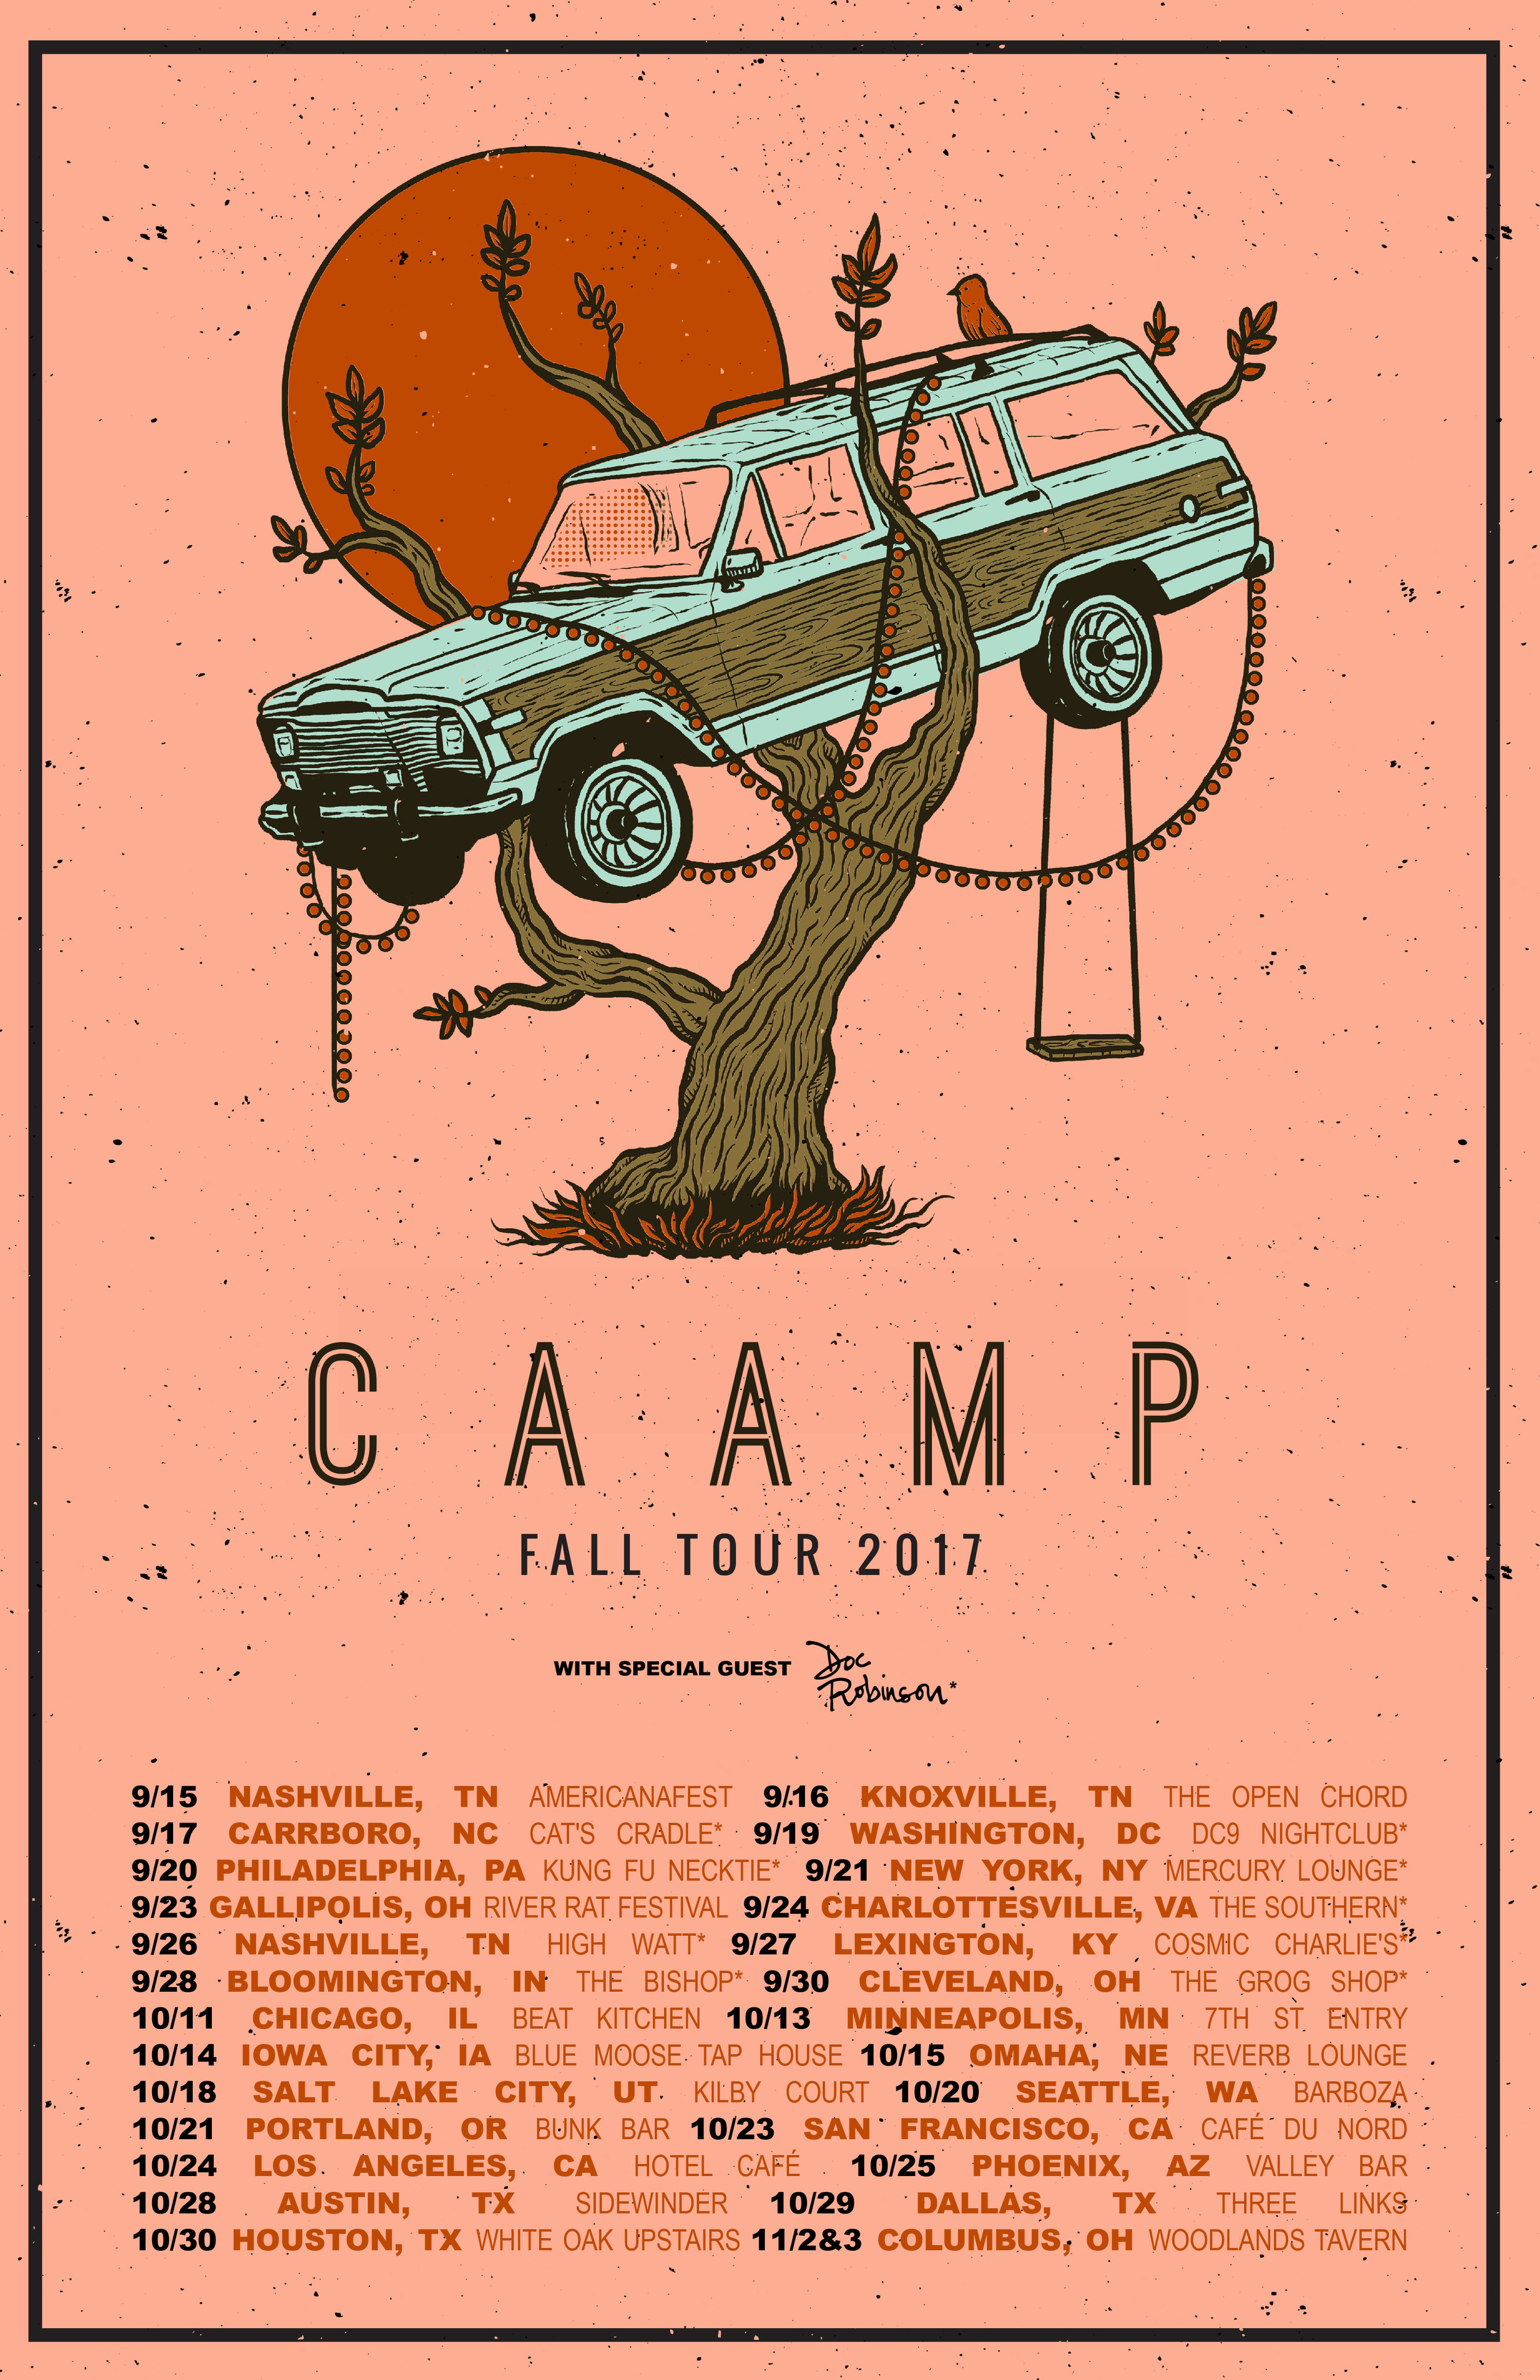 Caamp_Fall17TourPoster_docrobinson.jpg